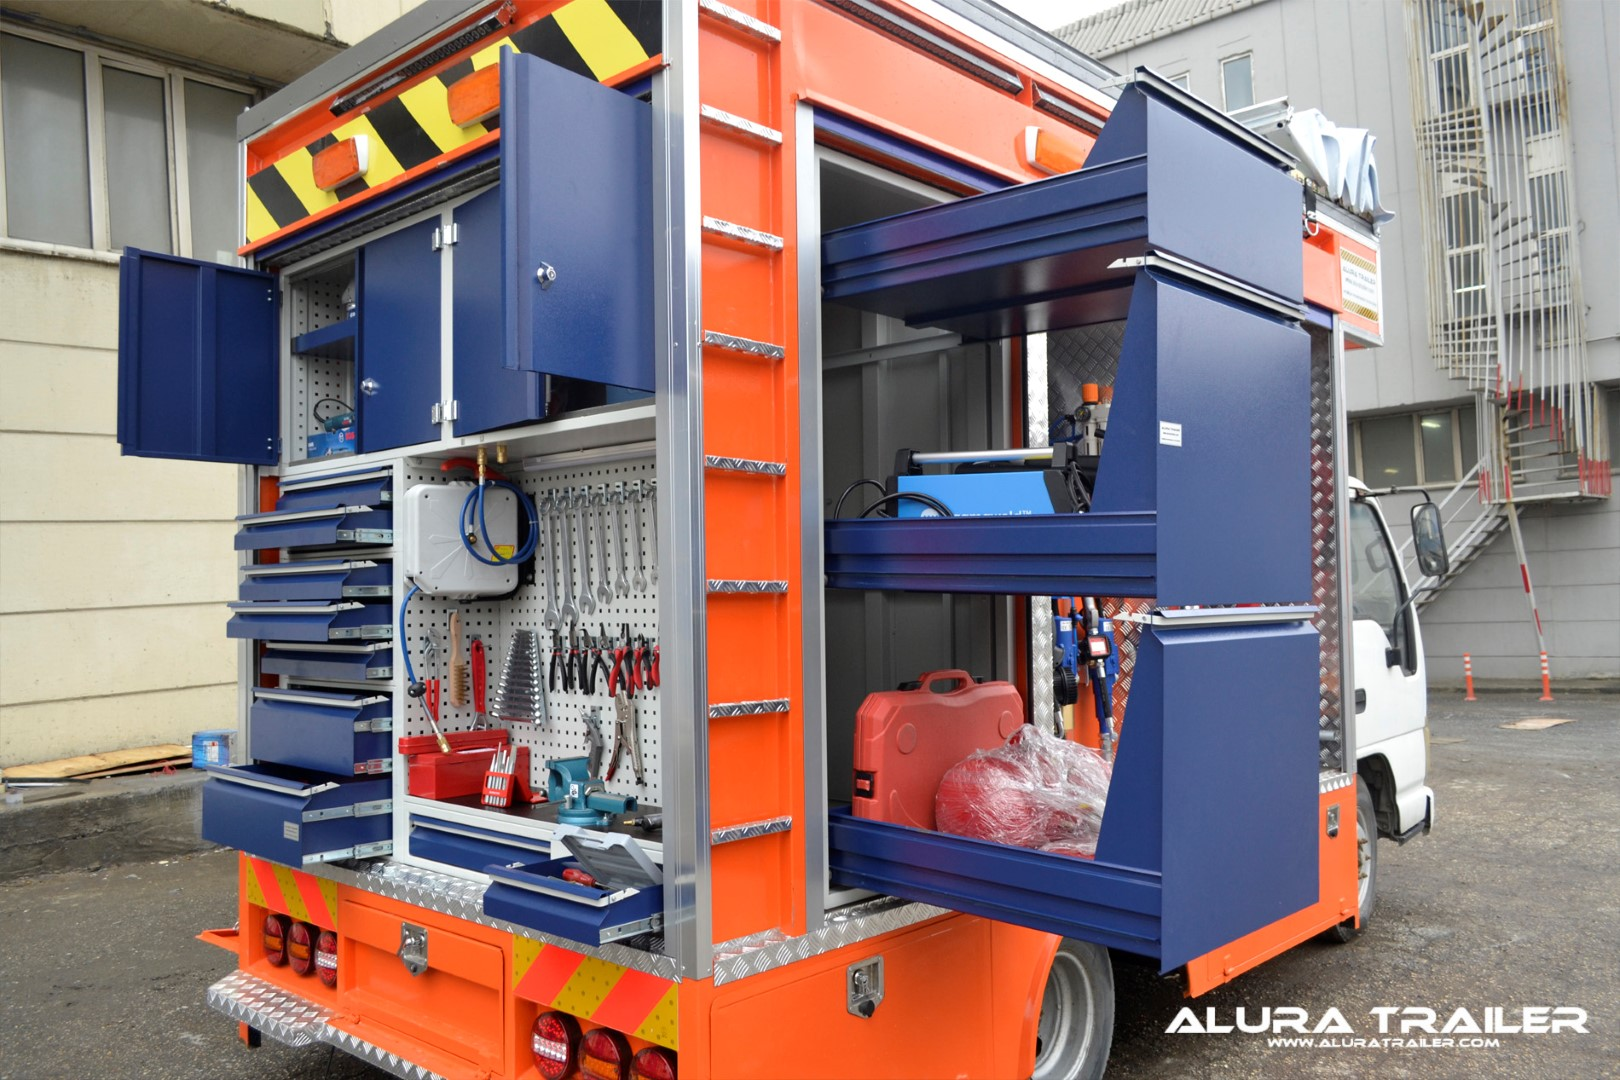 Alura trailer turkey mobile vehicles for Rv workshop